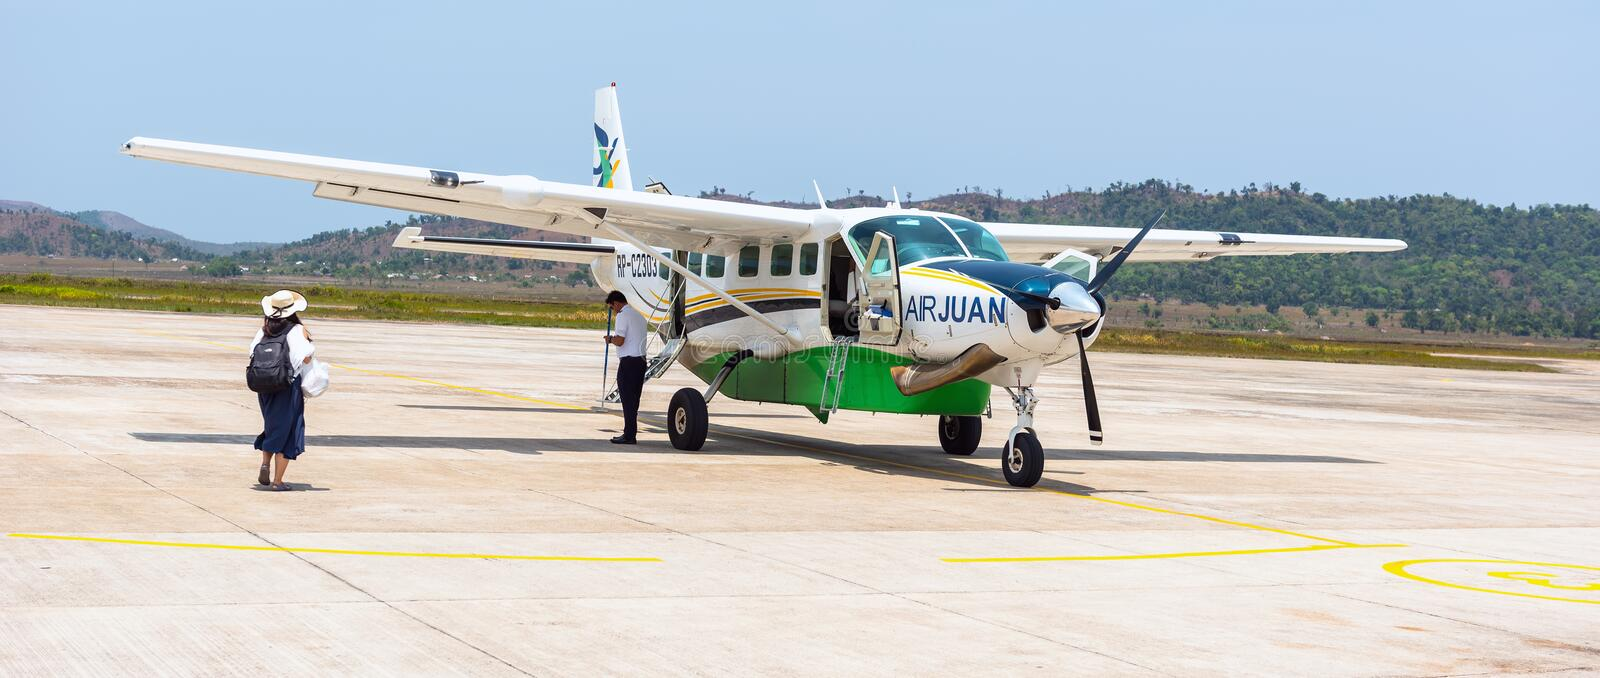 Small private 9 seat Airplane most popular transport at Palawans in Busuanga airport in Coron privince Busuanga island. stock photos